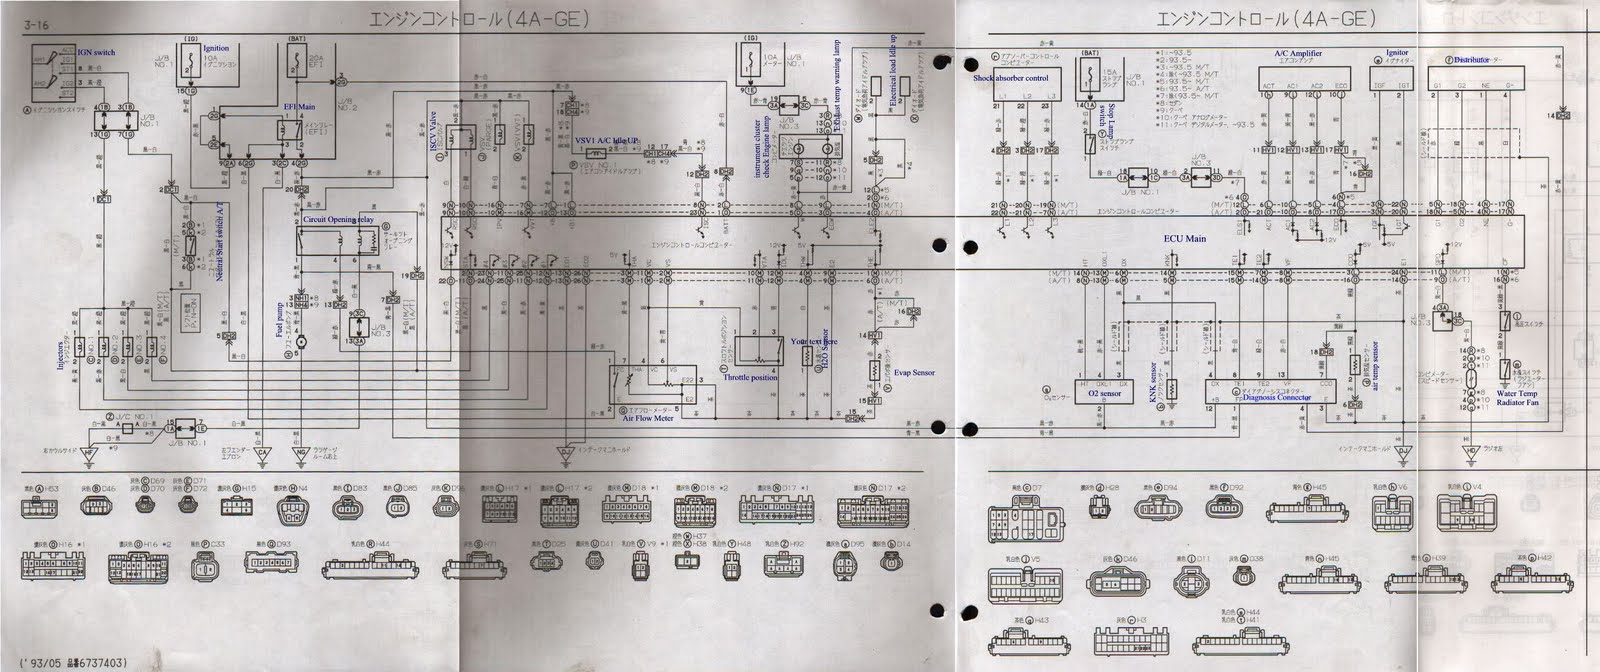 4age Silver Top Wiring Diagram - WIRE Center •